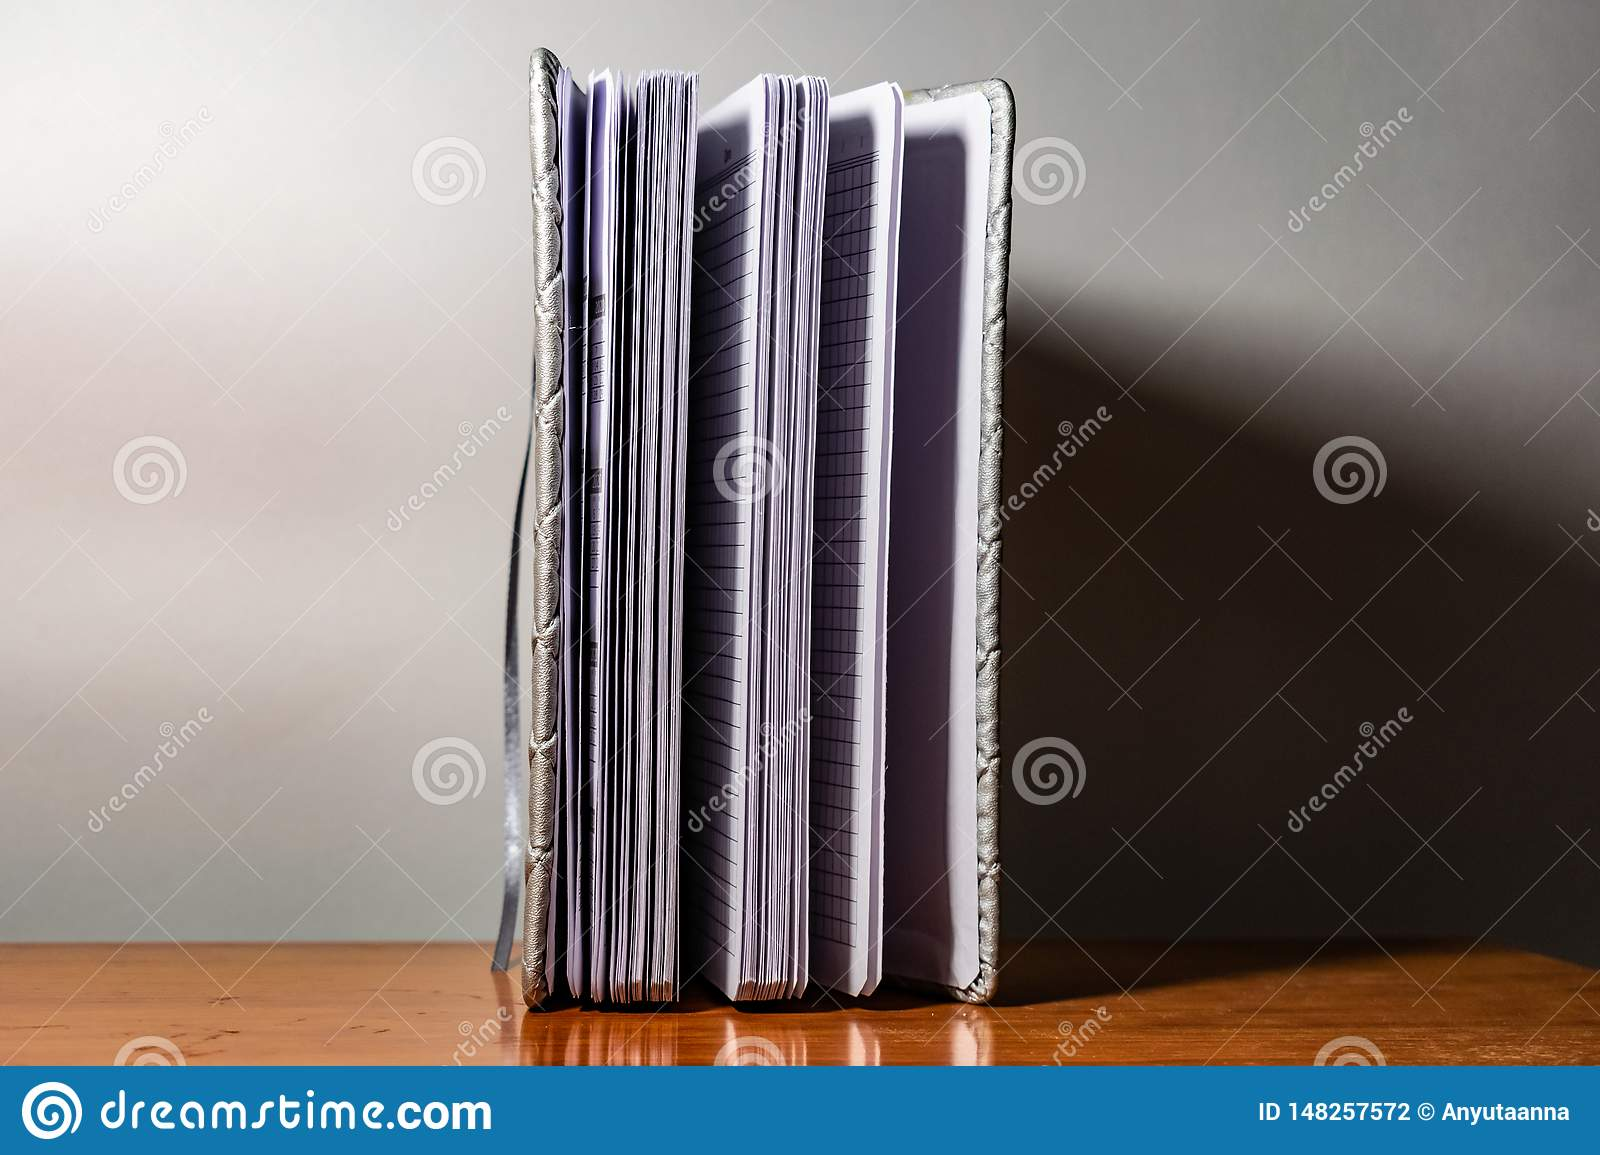 A book, a notebook with a checkered pattern on a wooden table in different poses. The cover is grey and soft with texture. Square